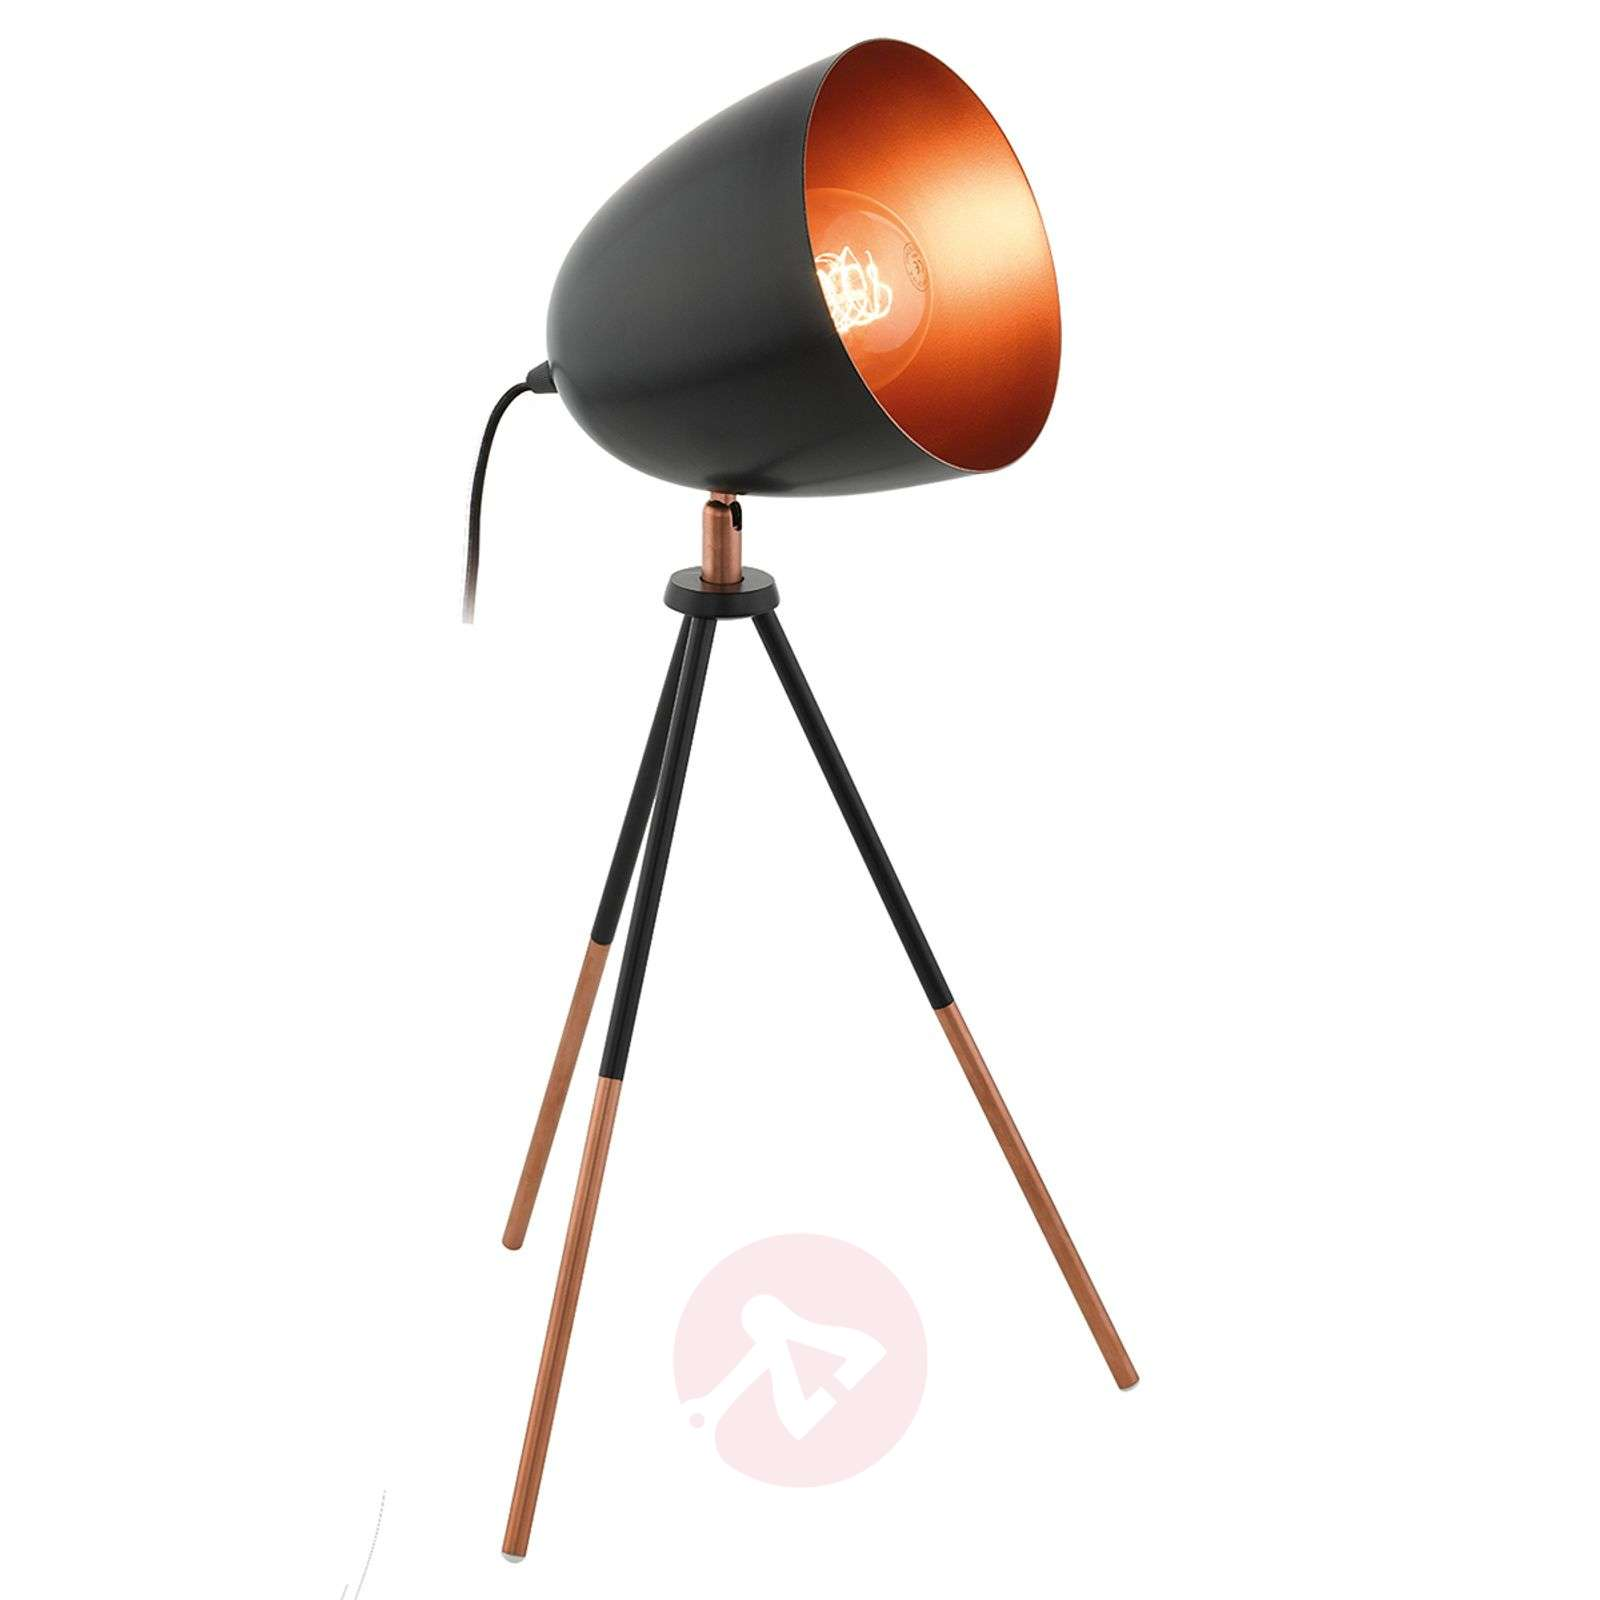 Three-legged table lamp Chester in a vintage look-3031876-01